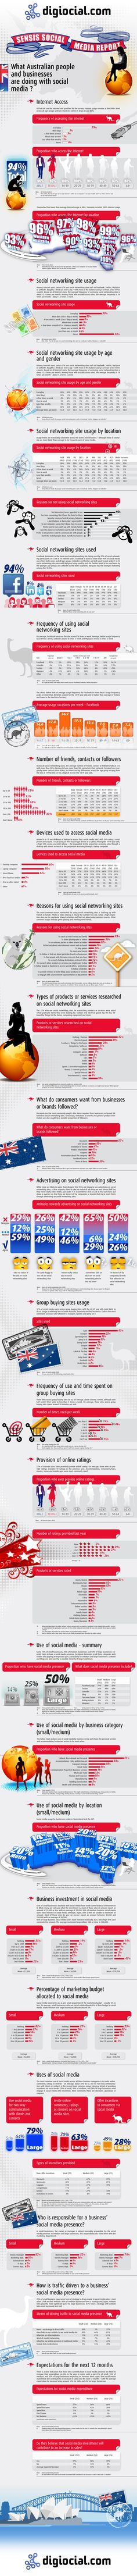 Brilliant info graph on Australian stats on social media usage!